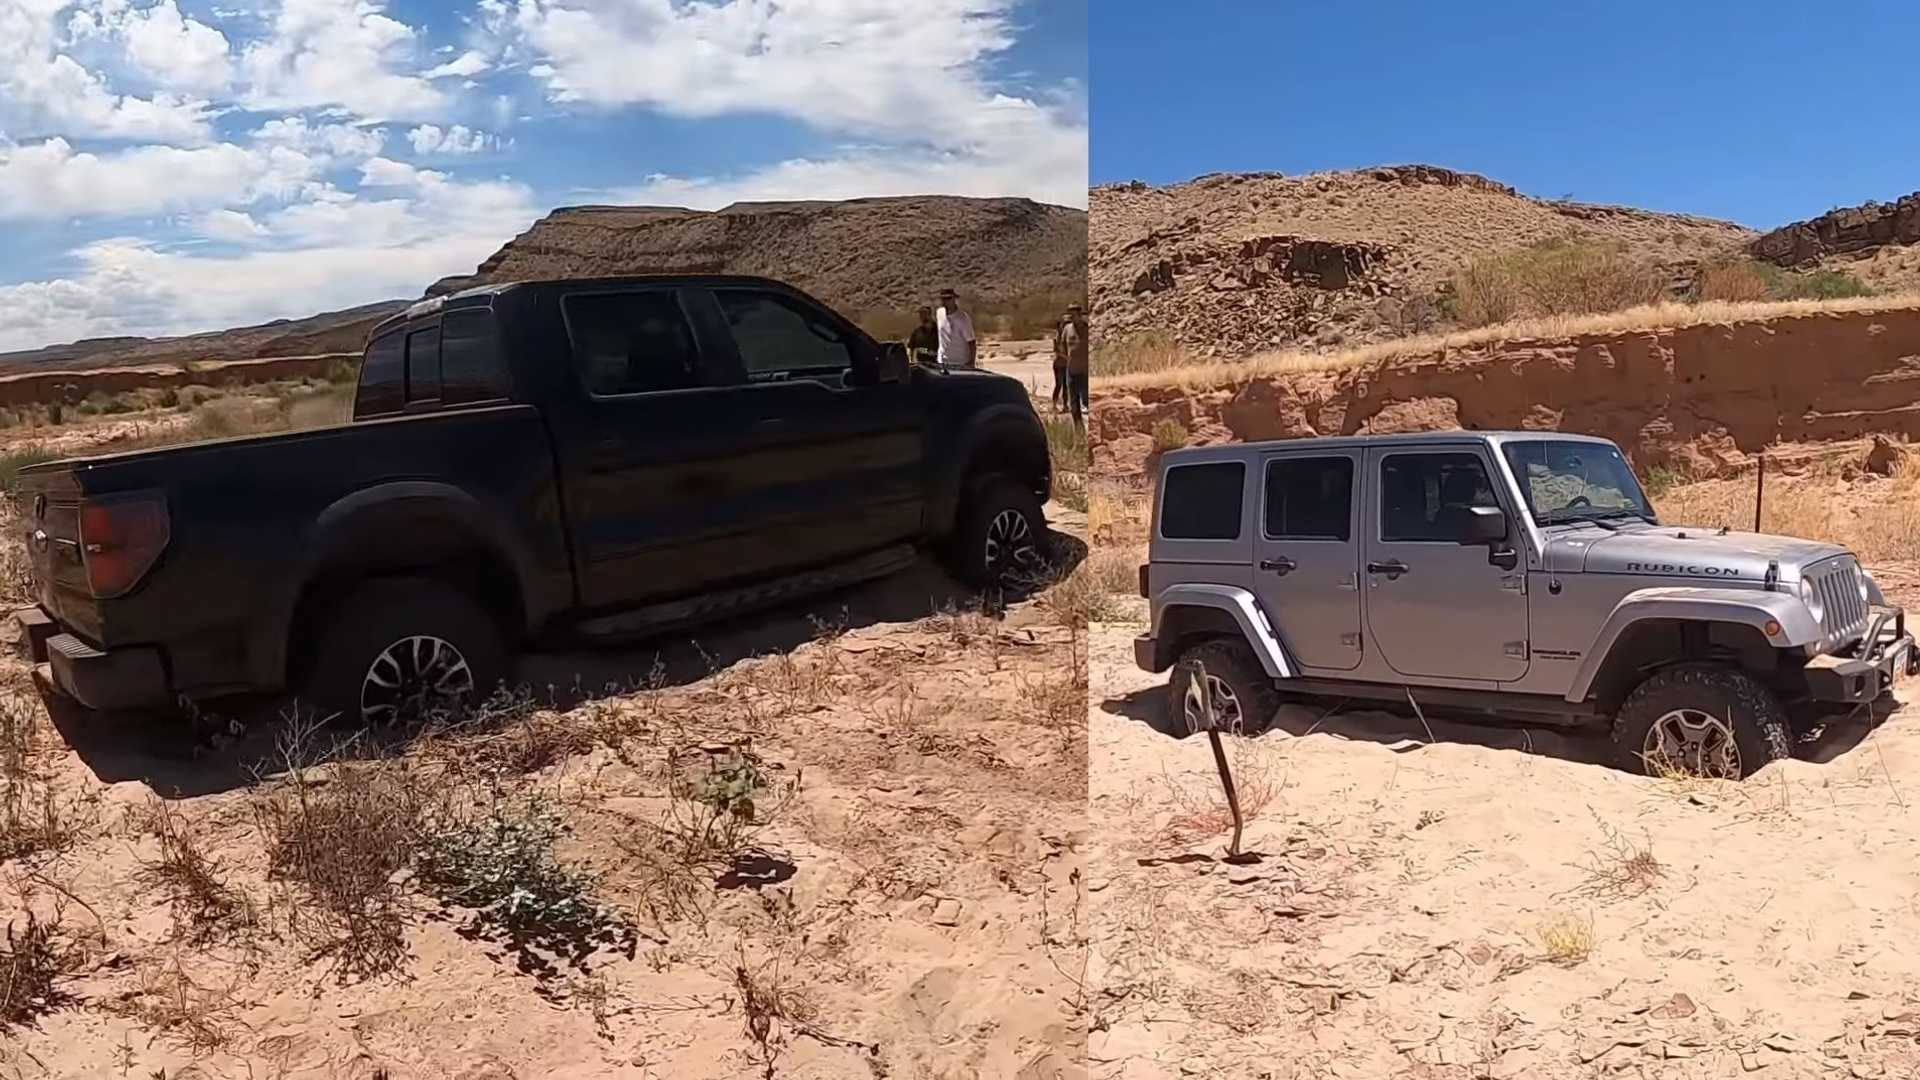 Jeep Wrangler Stuck In Sand After Trying To Pull Out Stranded Raptor - Motor1